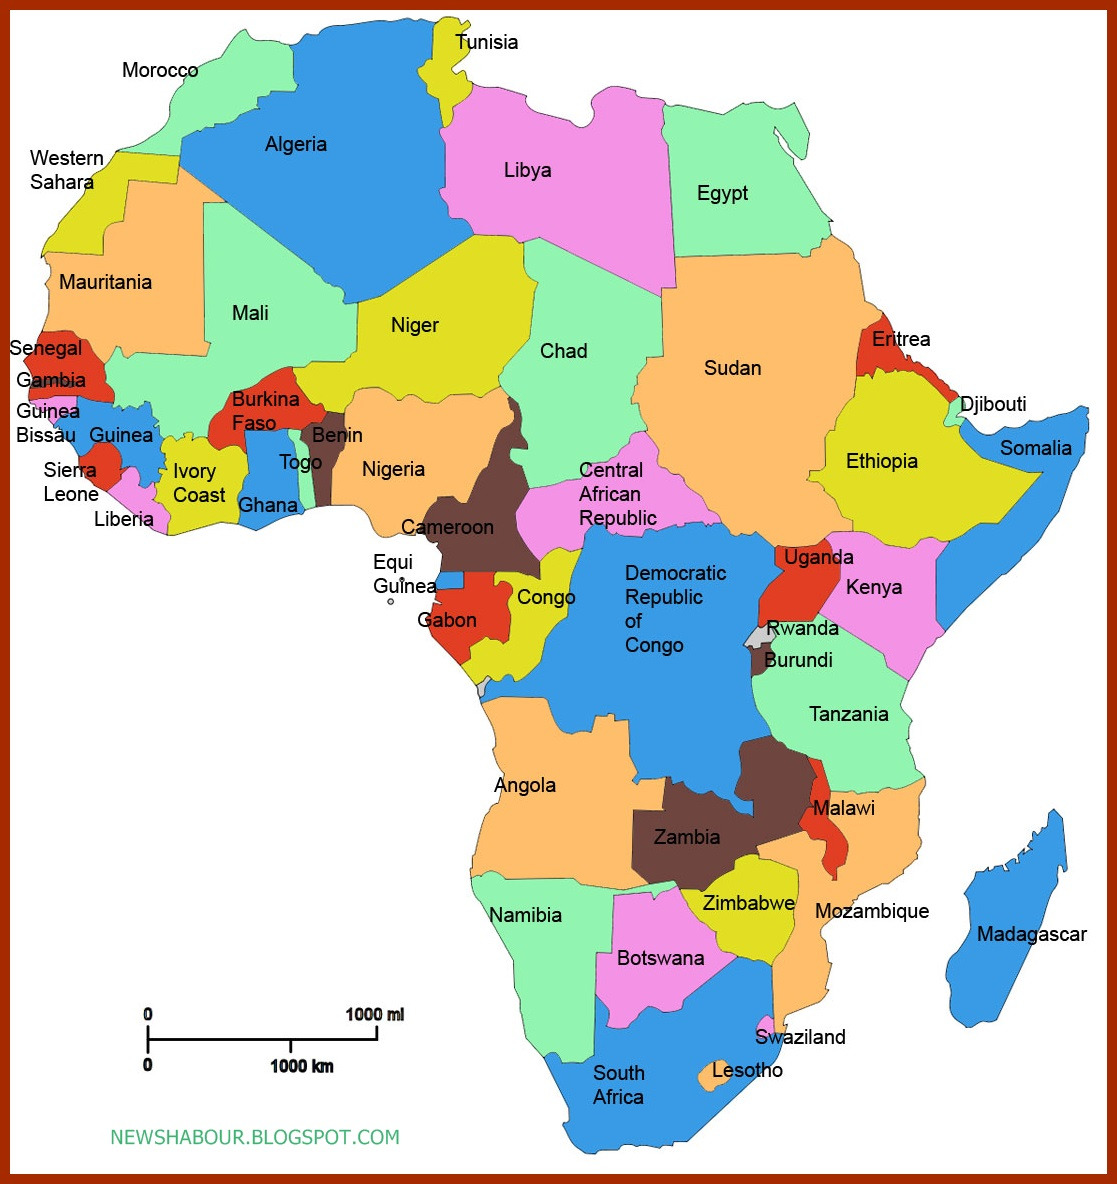 news habour checkout the alphabetical list of all african  - an illustrated map of africa showing the  countries